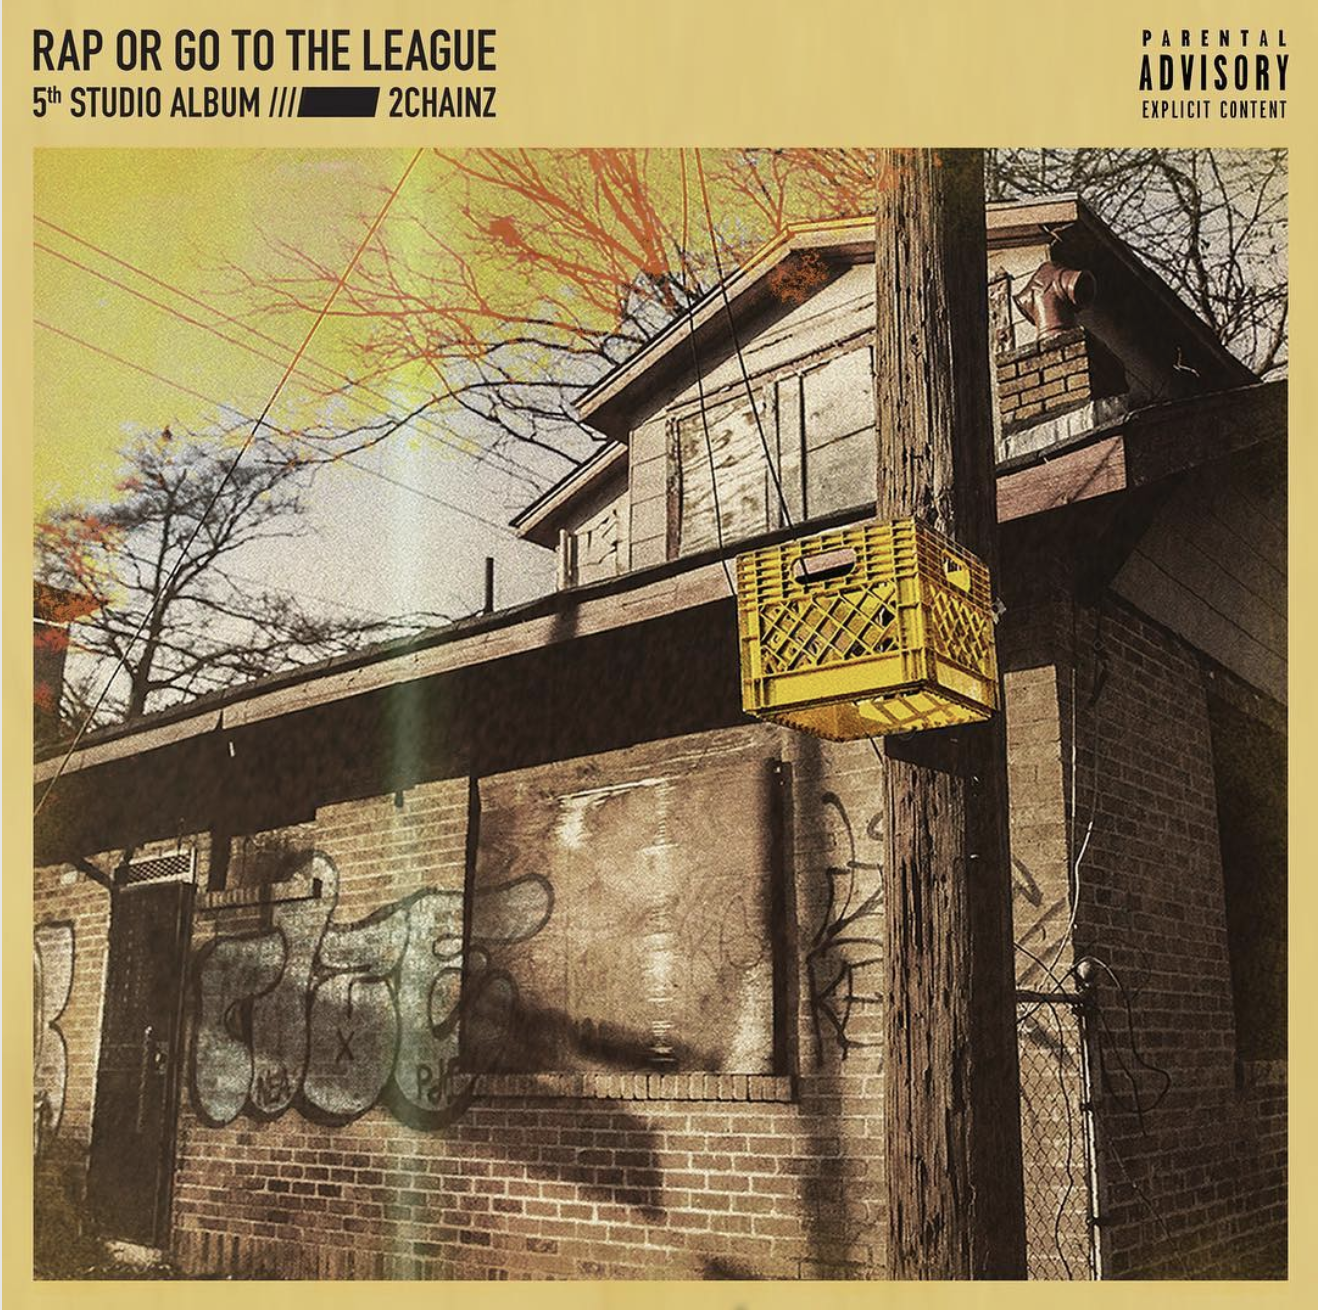 2 Chainz Shows Up in Championship Shape on Rap or Go to the